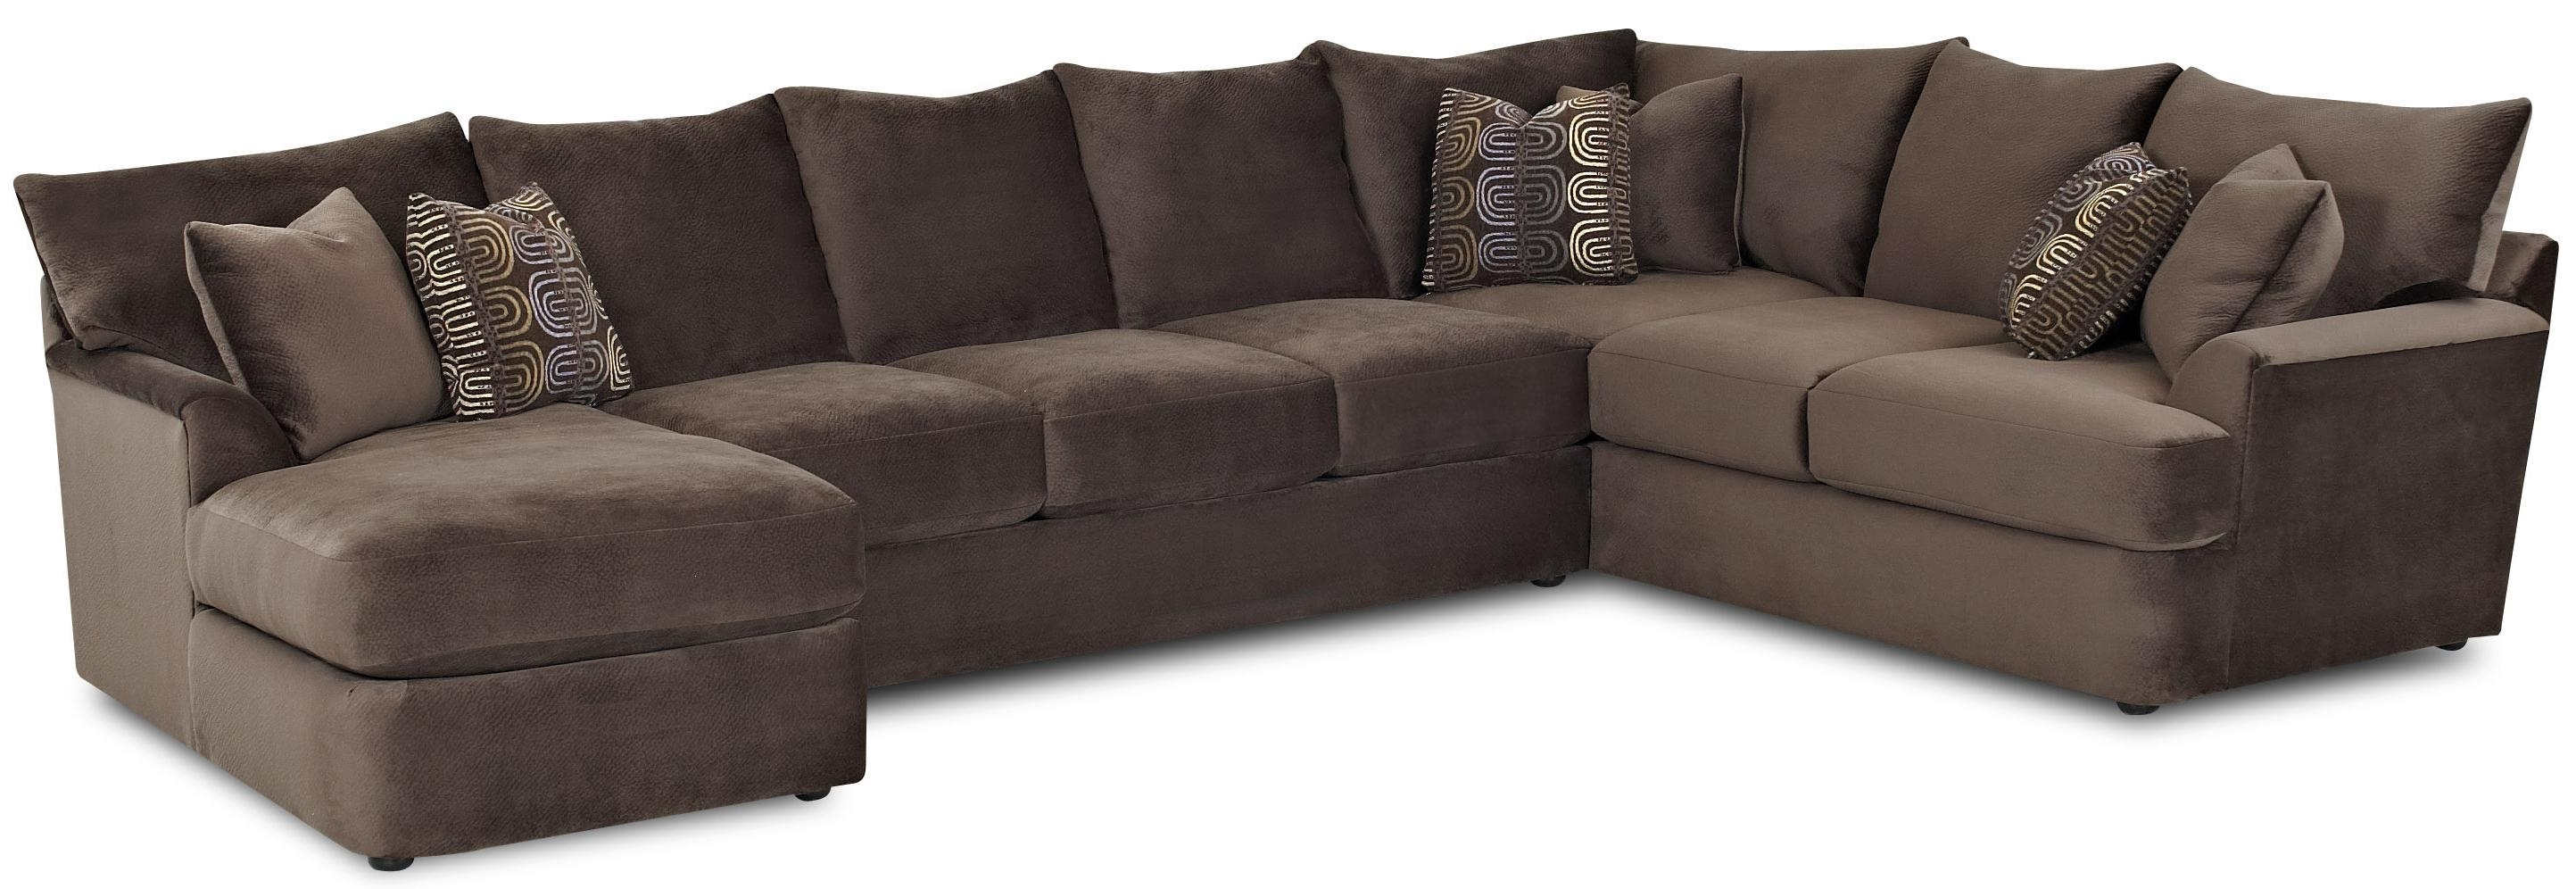 L Shaped Sectional Sofa With Left Chaiseklaussner Wolf And inside L Shaped Sectional Sofas (Image 7 of 10)